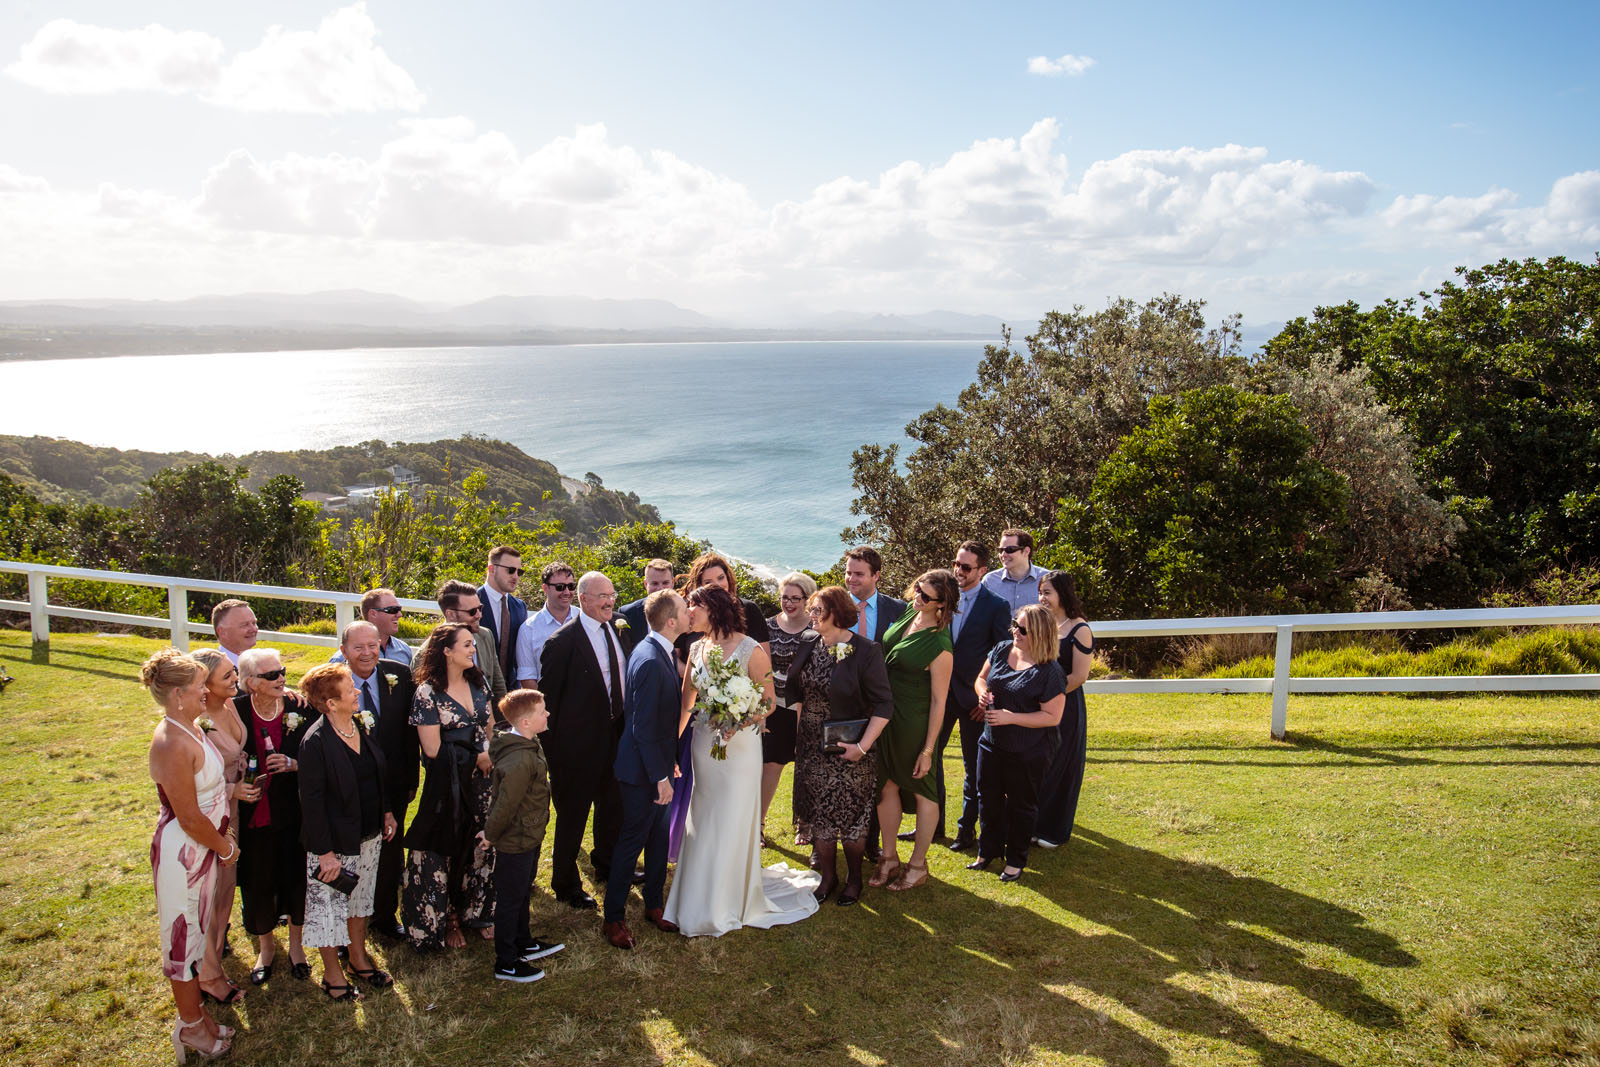 byron_bay_wedding_photogrpaher_573